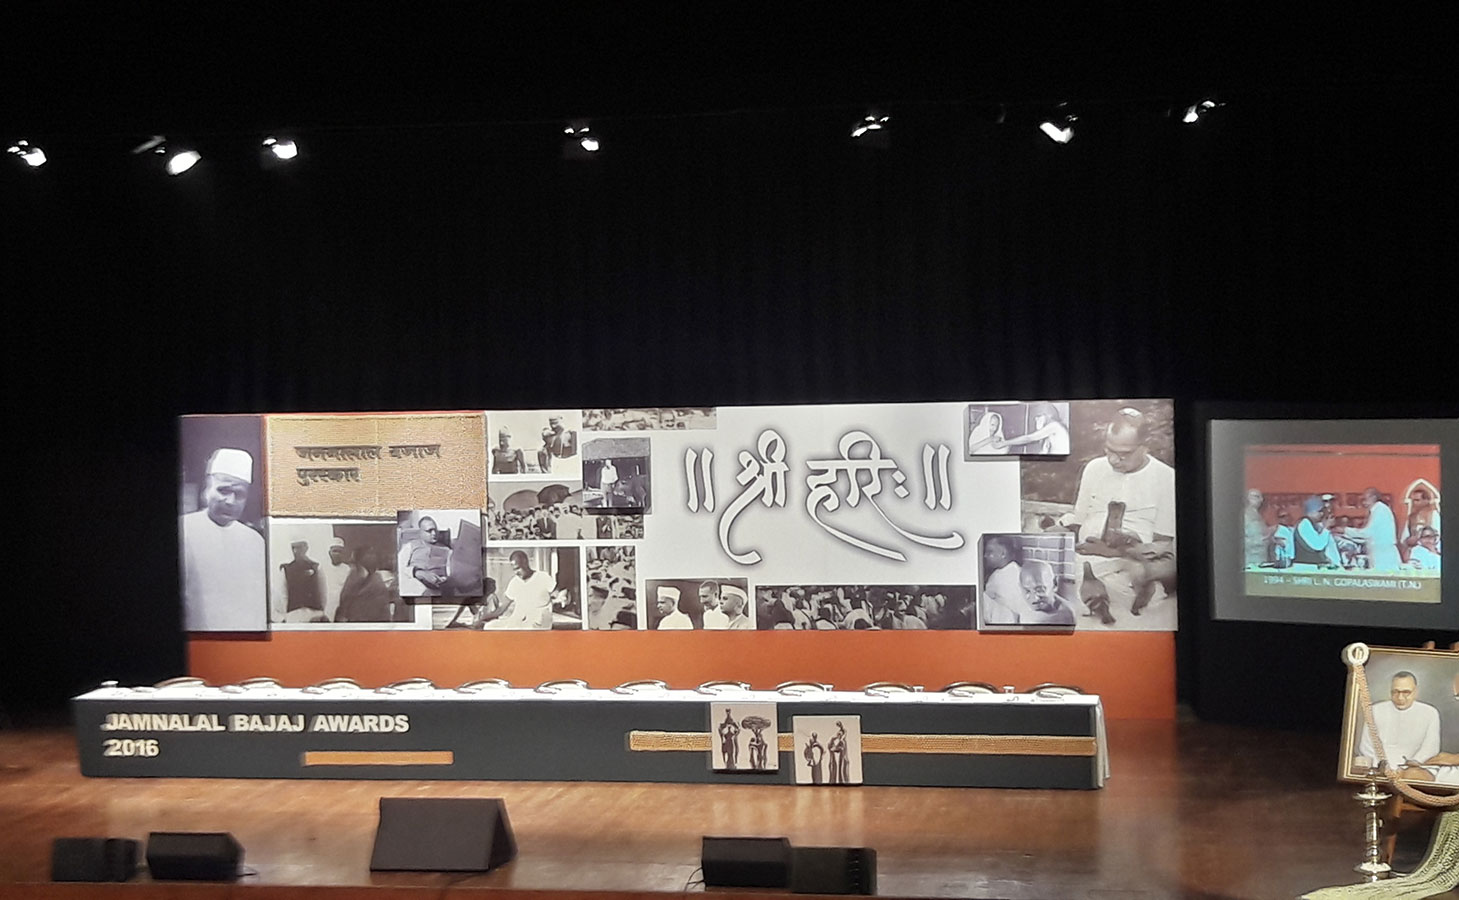 The stage is set for the beginning of the Jamnalal Bajaj Awards Ceremony (November, 2015)